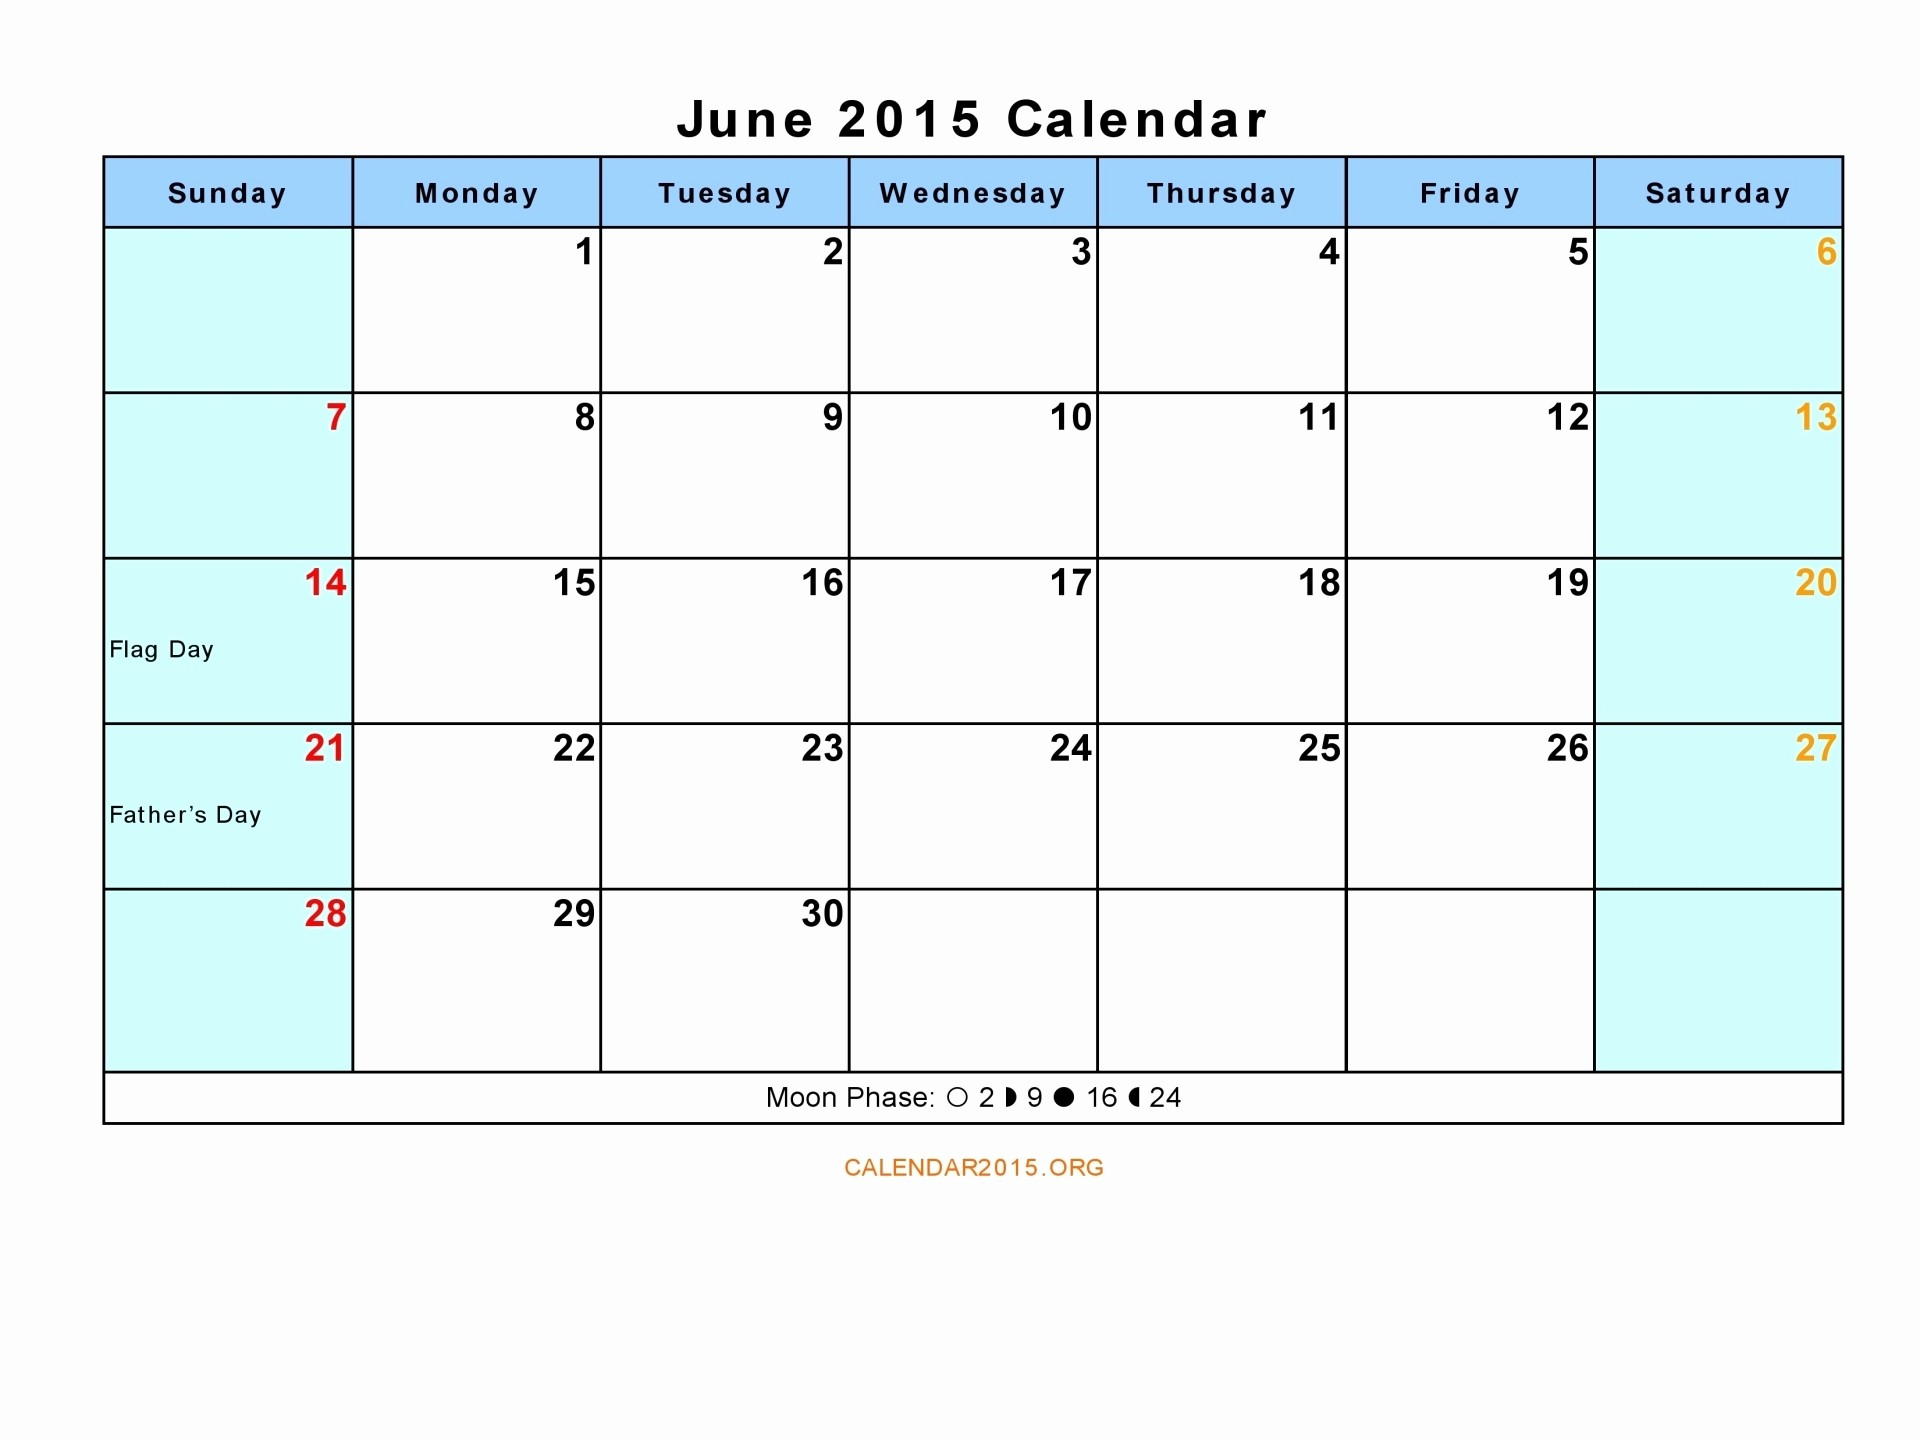 Calendar Template for June 2015 Inspirational June 2015 Driverlayer Search Engine